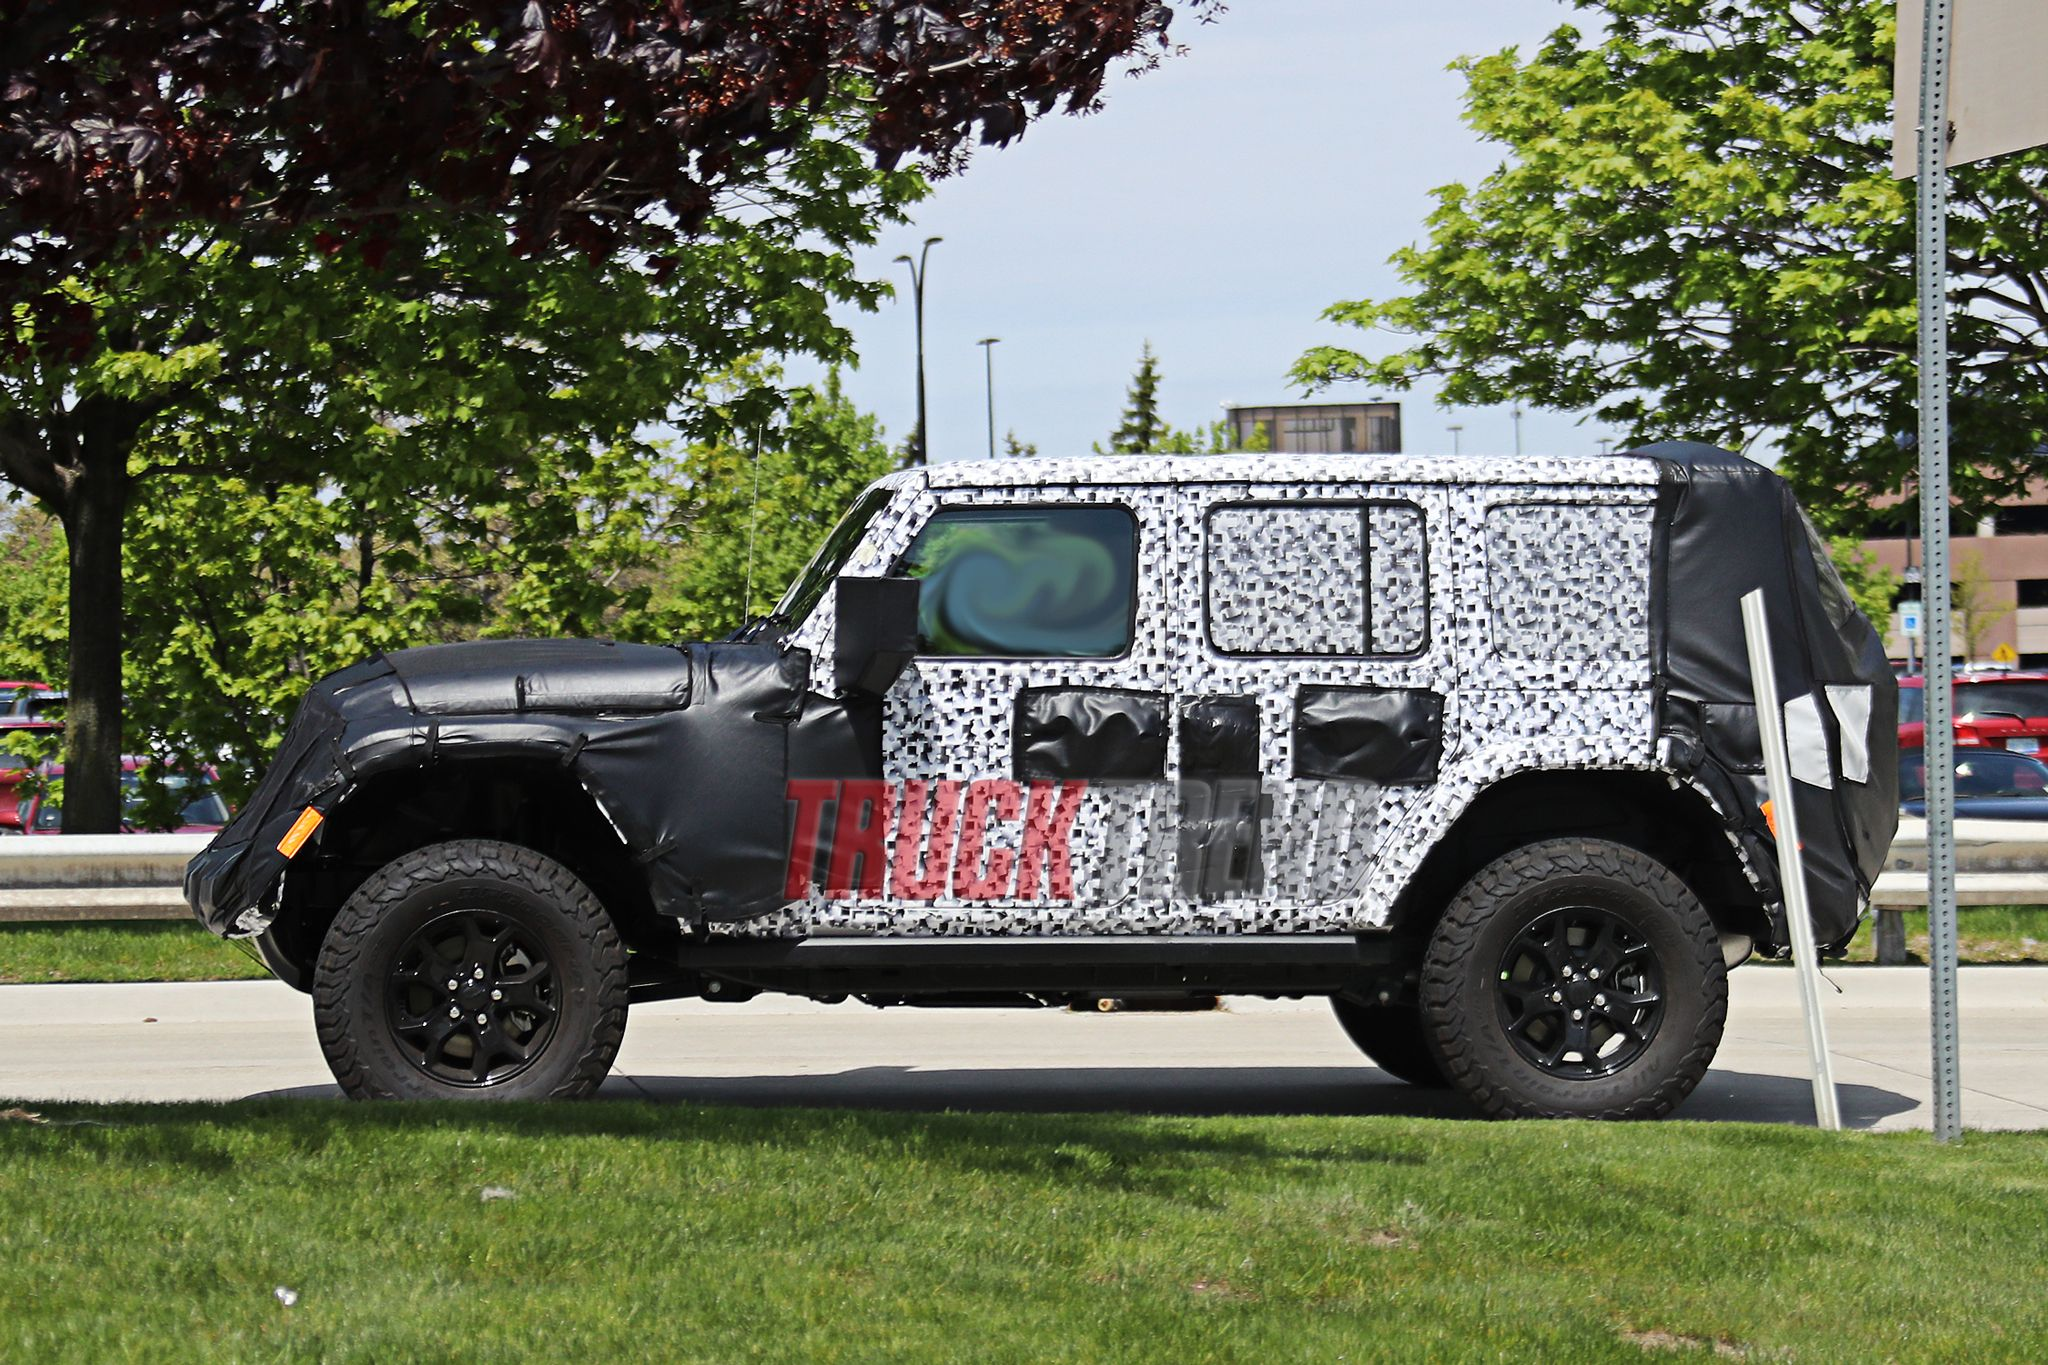 2018 Jeep JL Wrangler - SPIED! Spy Photos, Price, Release date